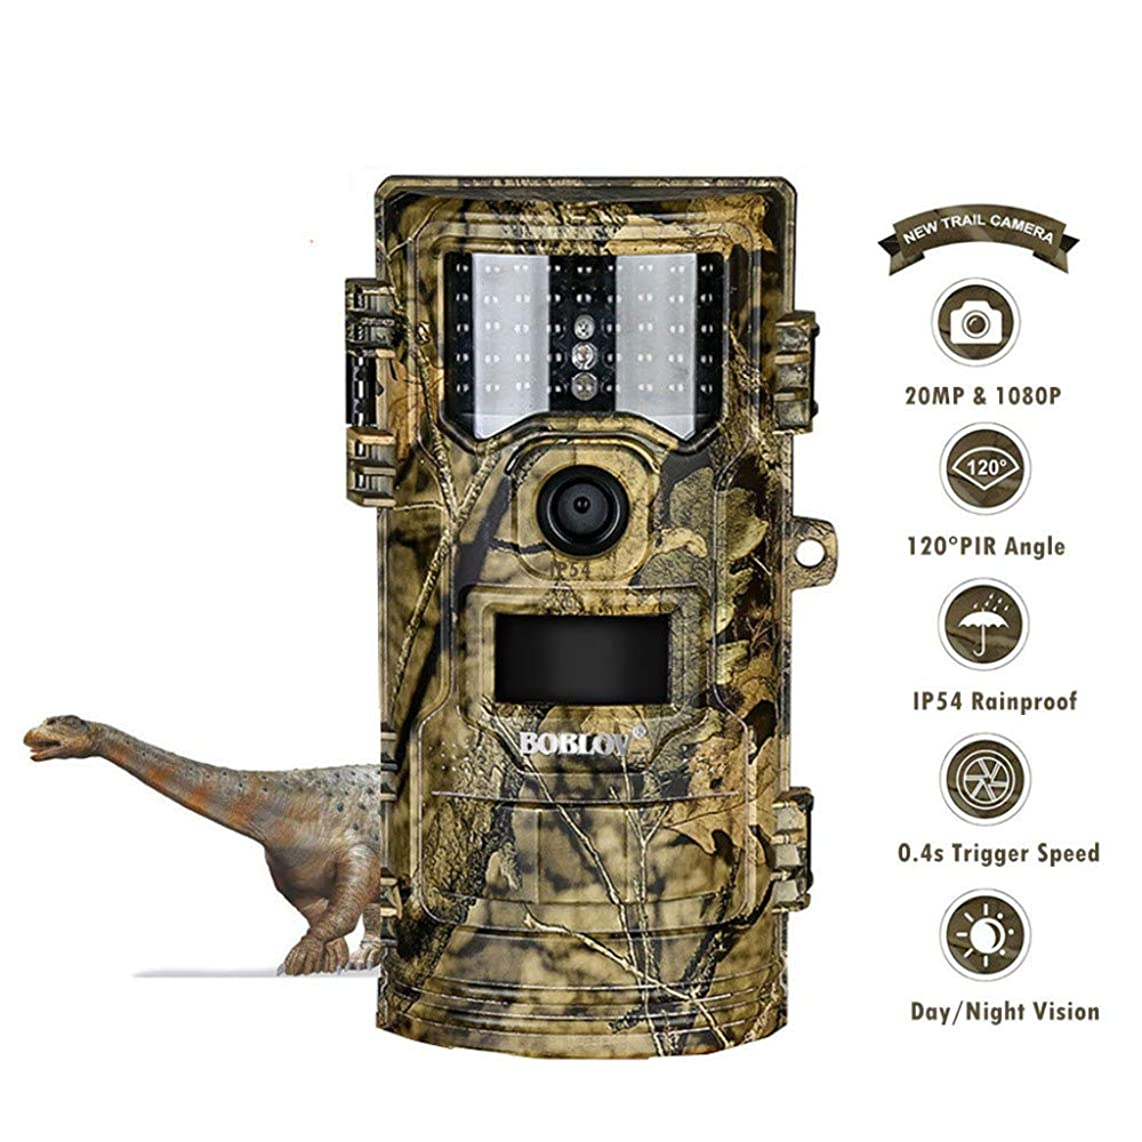 DUANJ Trail Camera 20MP 1080P, Game Camera with No Glow LED Infrared Night Vision Up to 65Ft, Waterproof Wildlife Hunting Cameras with 120° Wide Angle/0.4s Trigger Time